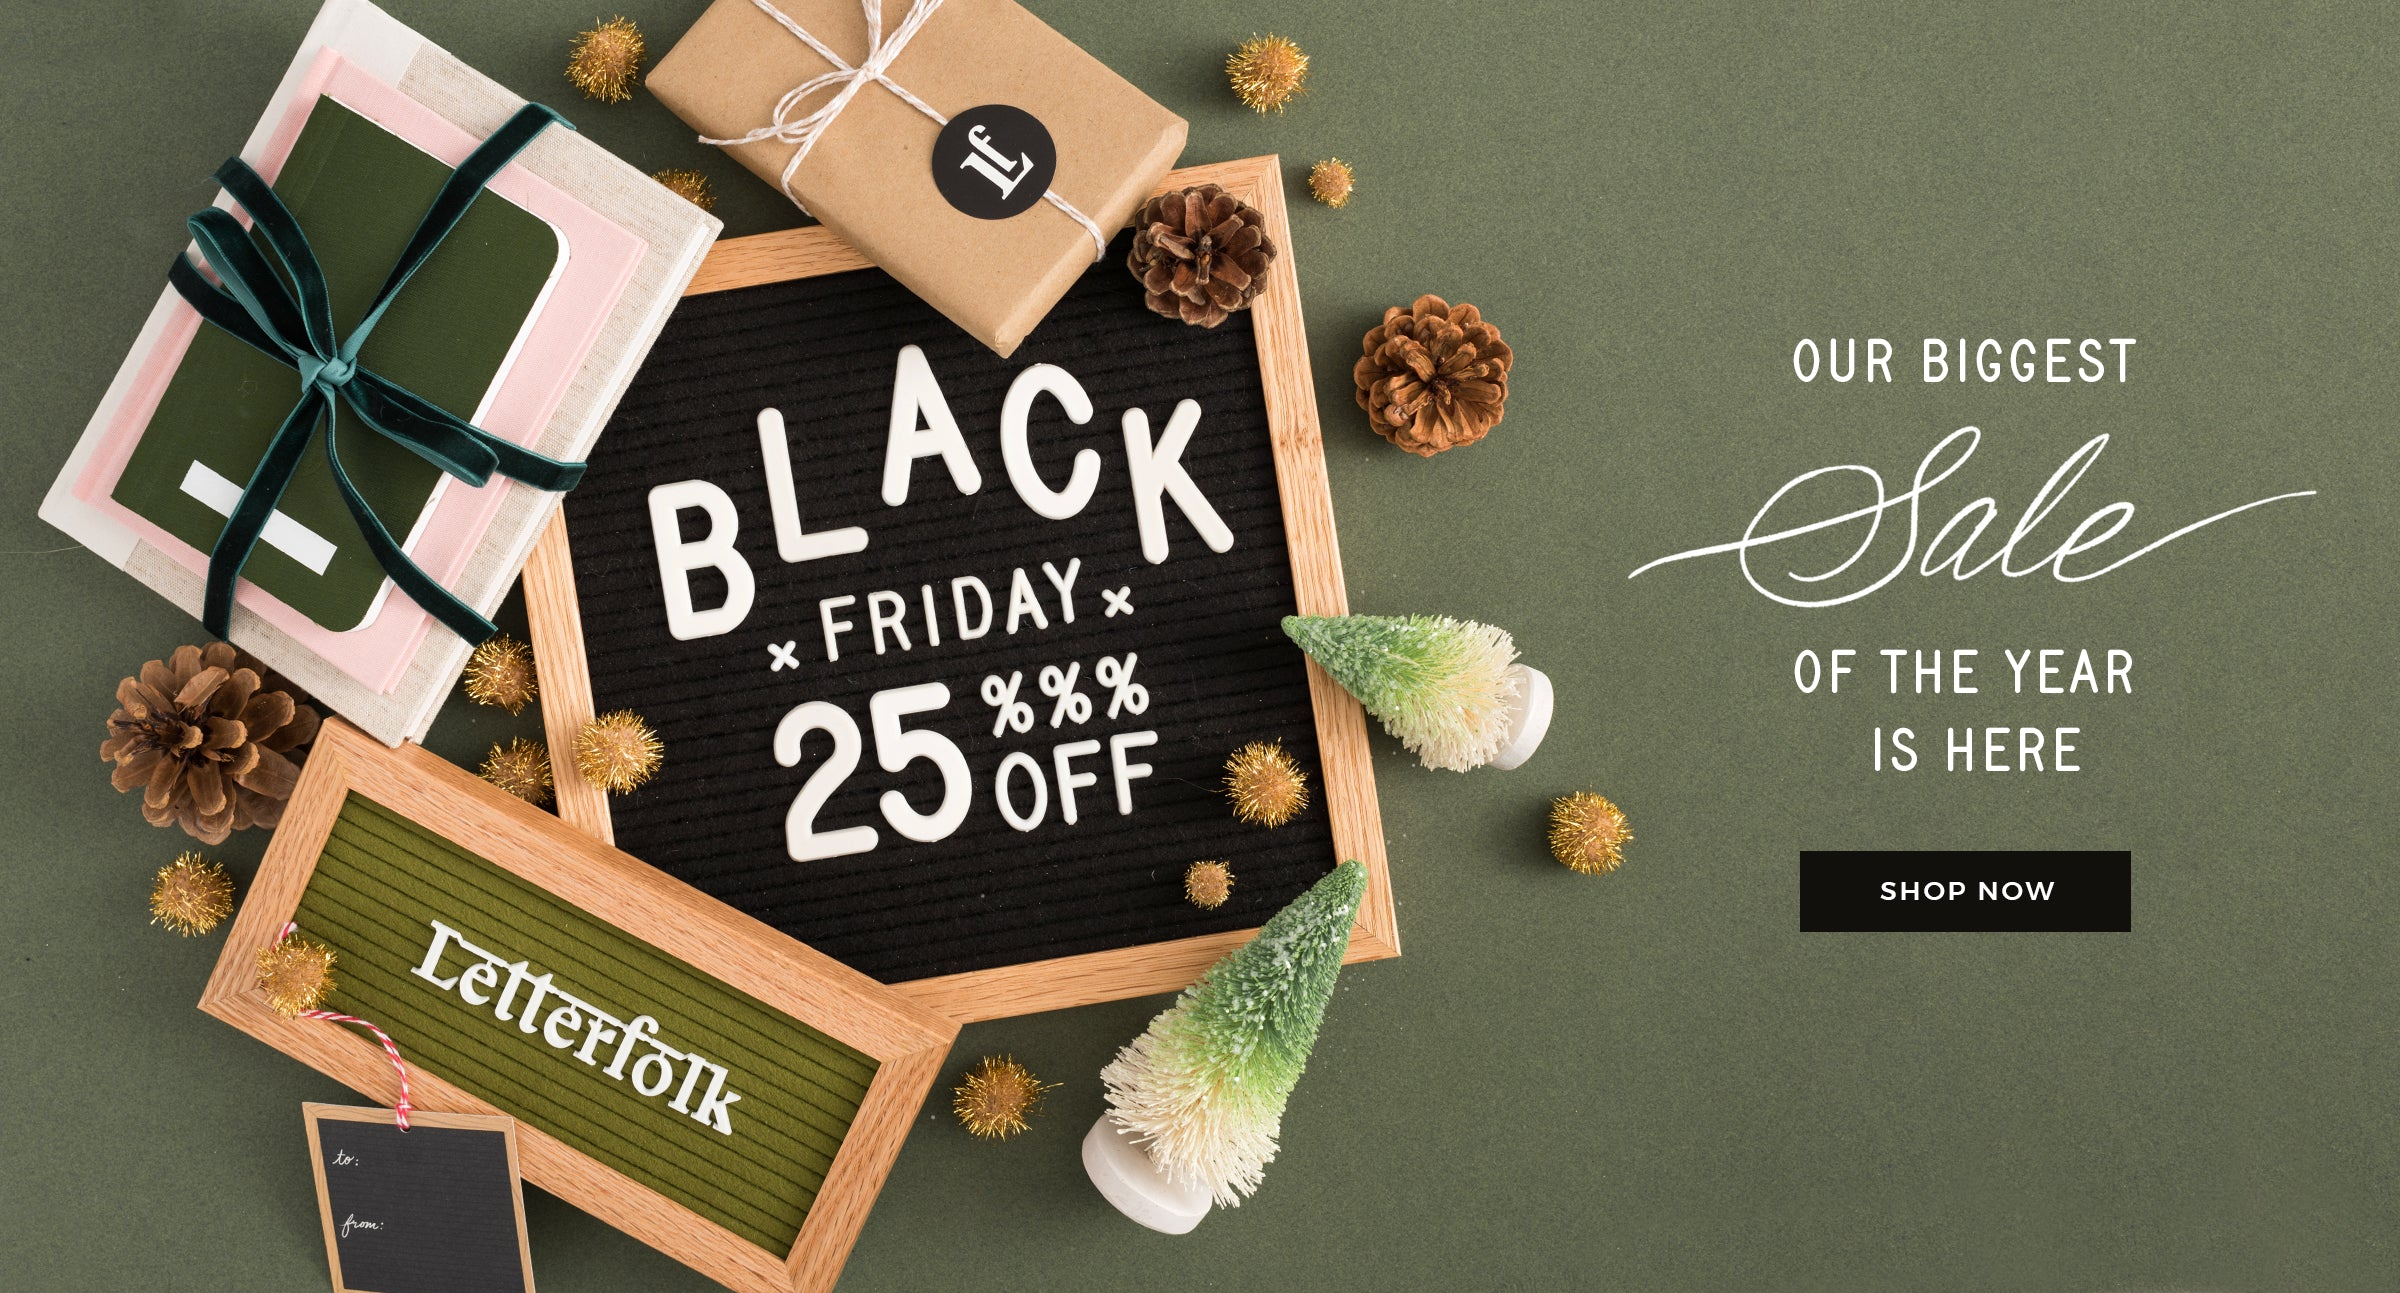 Black Friday Sale at Letterfolk